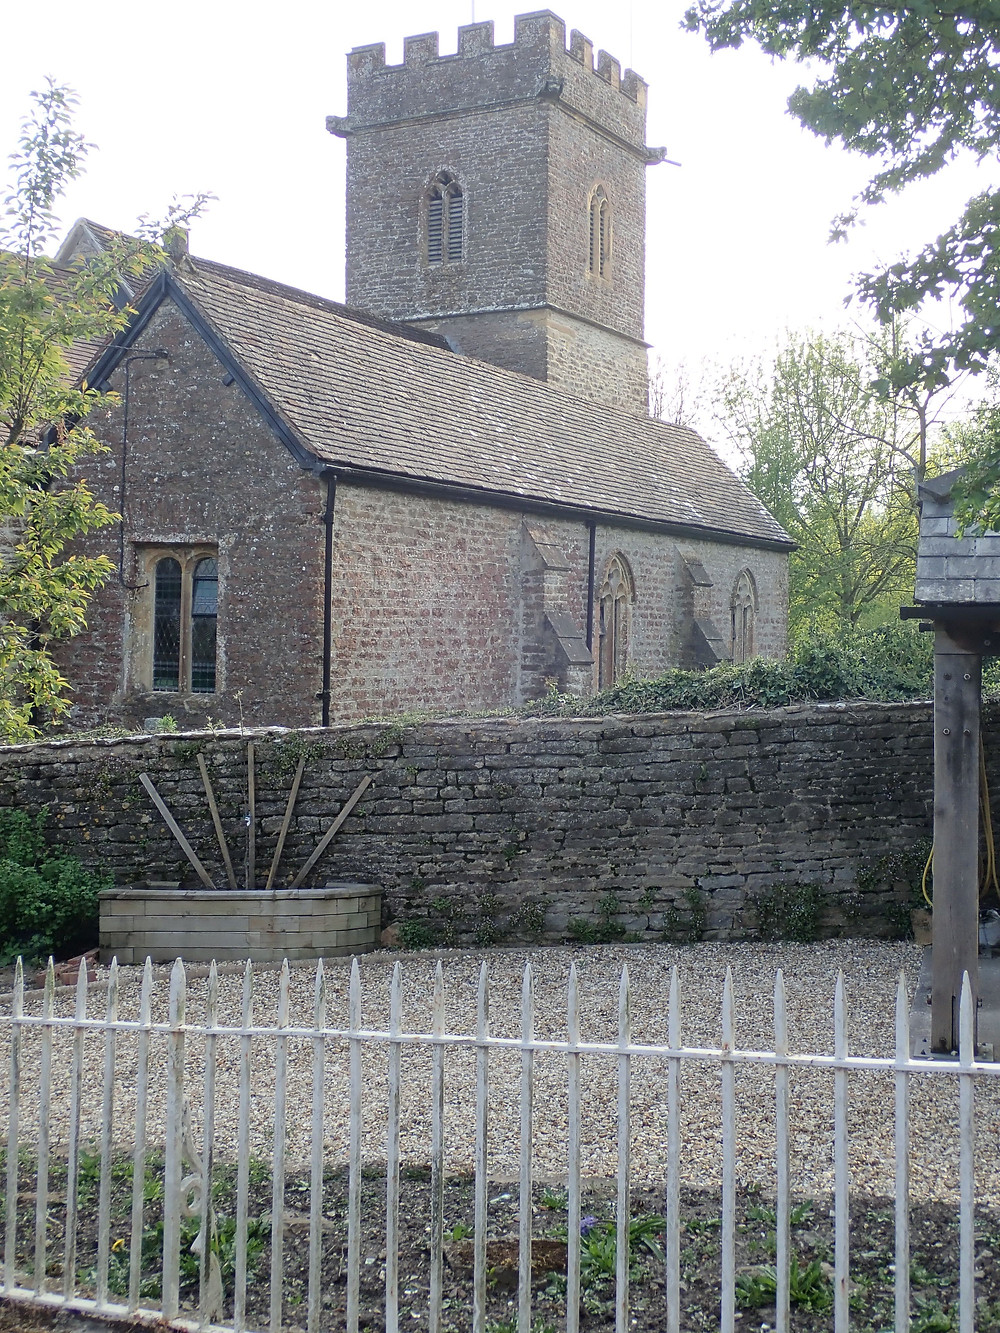 A church with a tower clearly seen from a road.